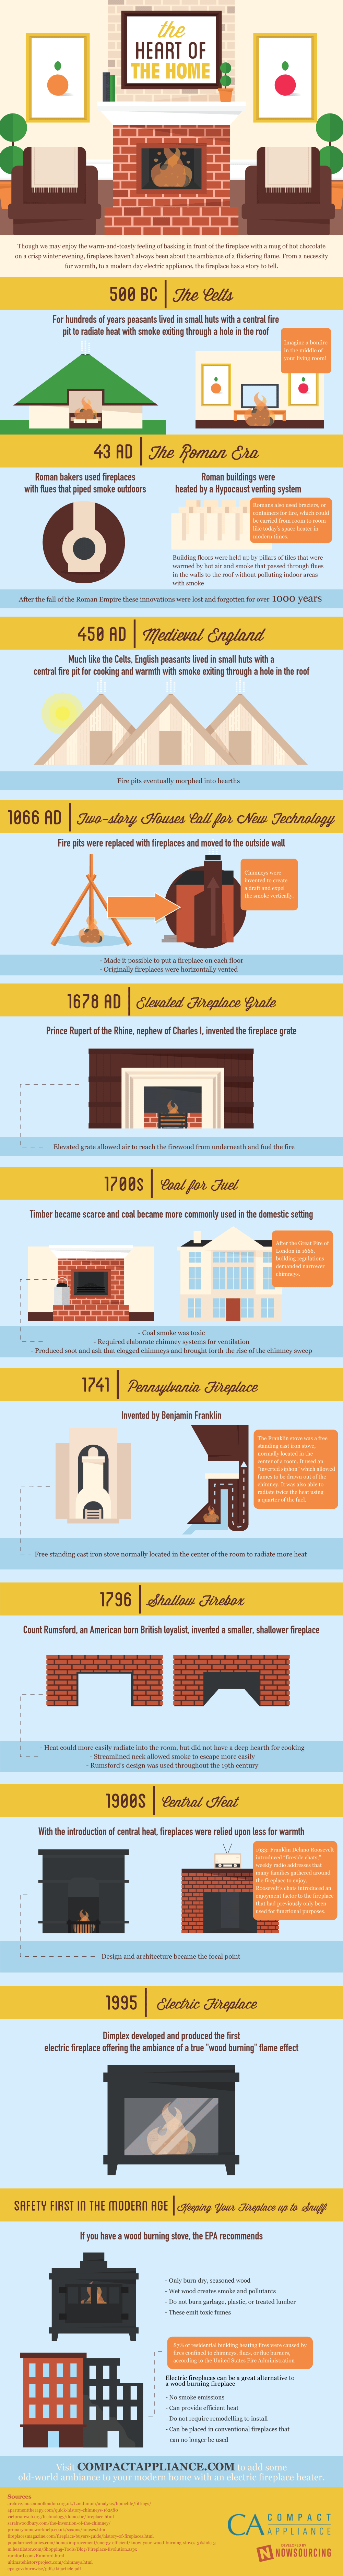 the evolution of the fireplace infographic